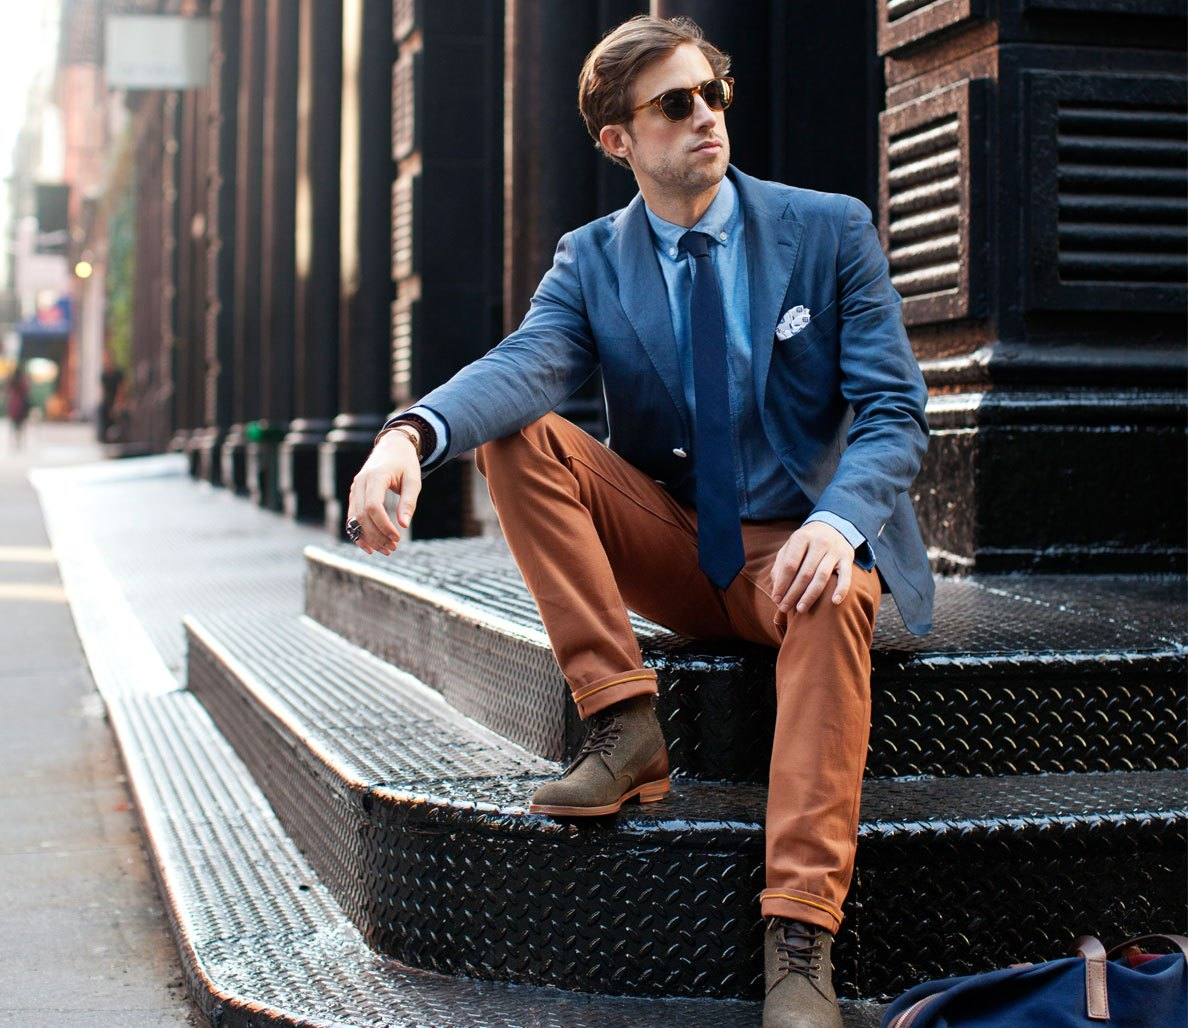 How to flaunt your style to look sharp